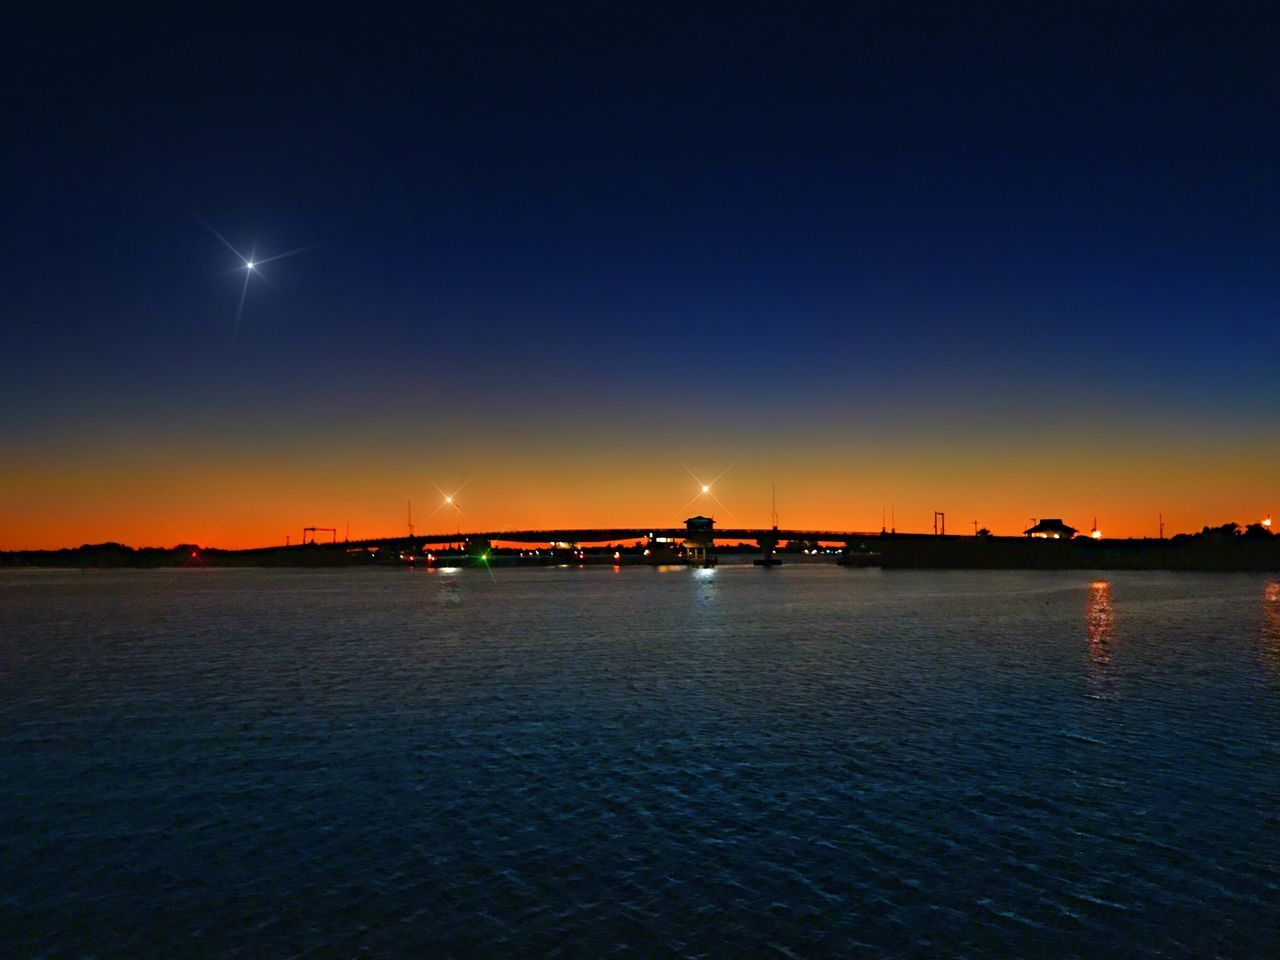 night, illuminated, beauty in nature, no people, sunset, outdoors, nature, water, moon, tranquility, sky, scenics, clear sky